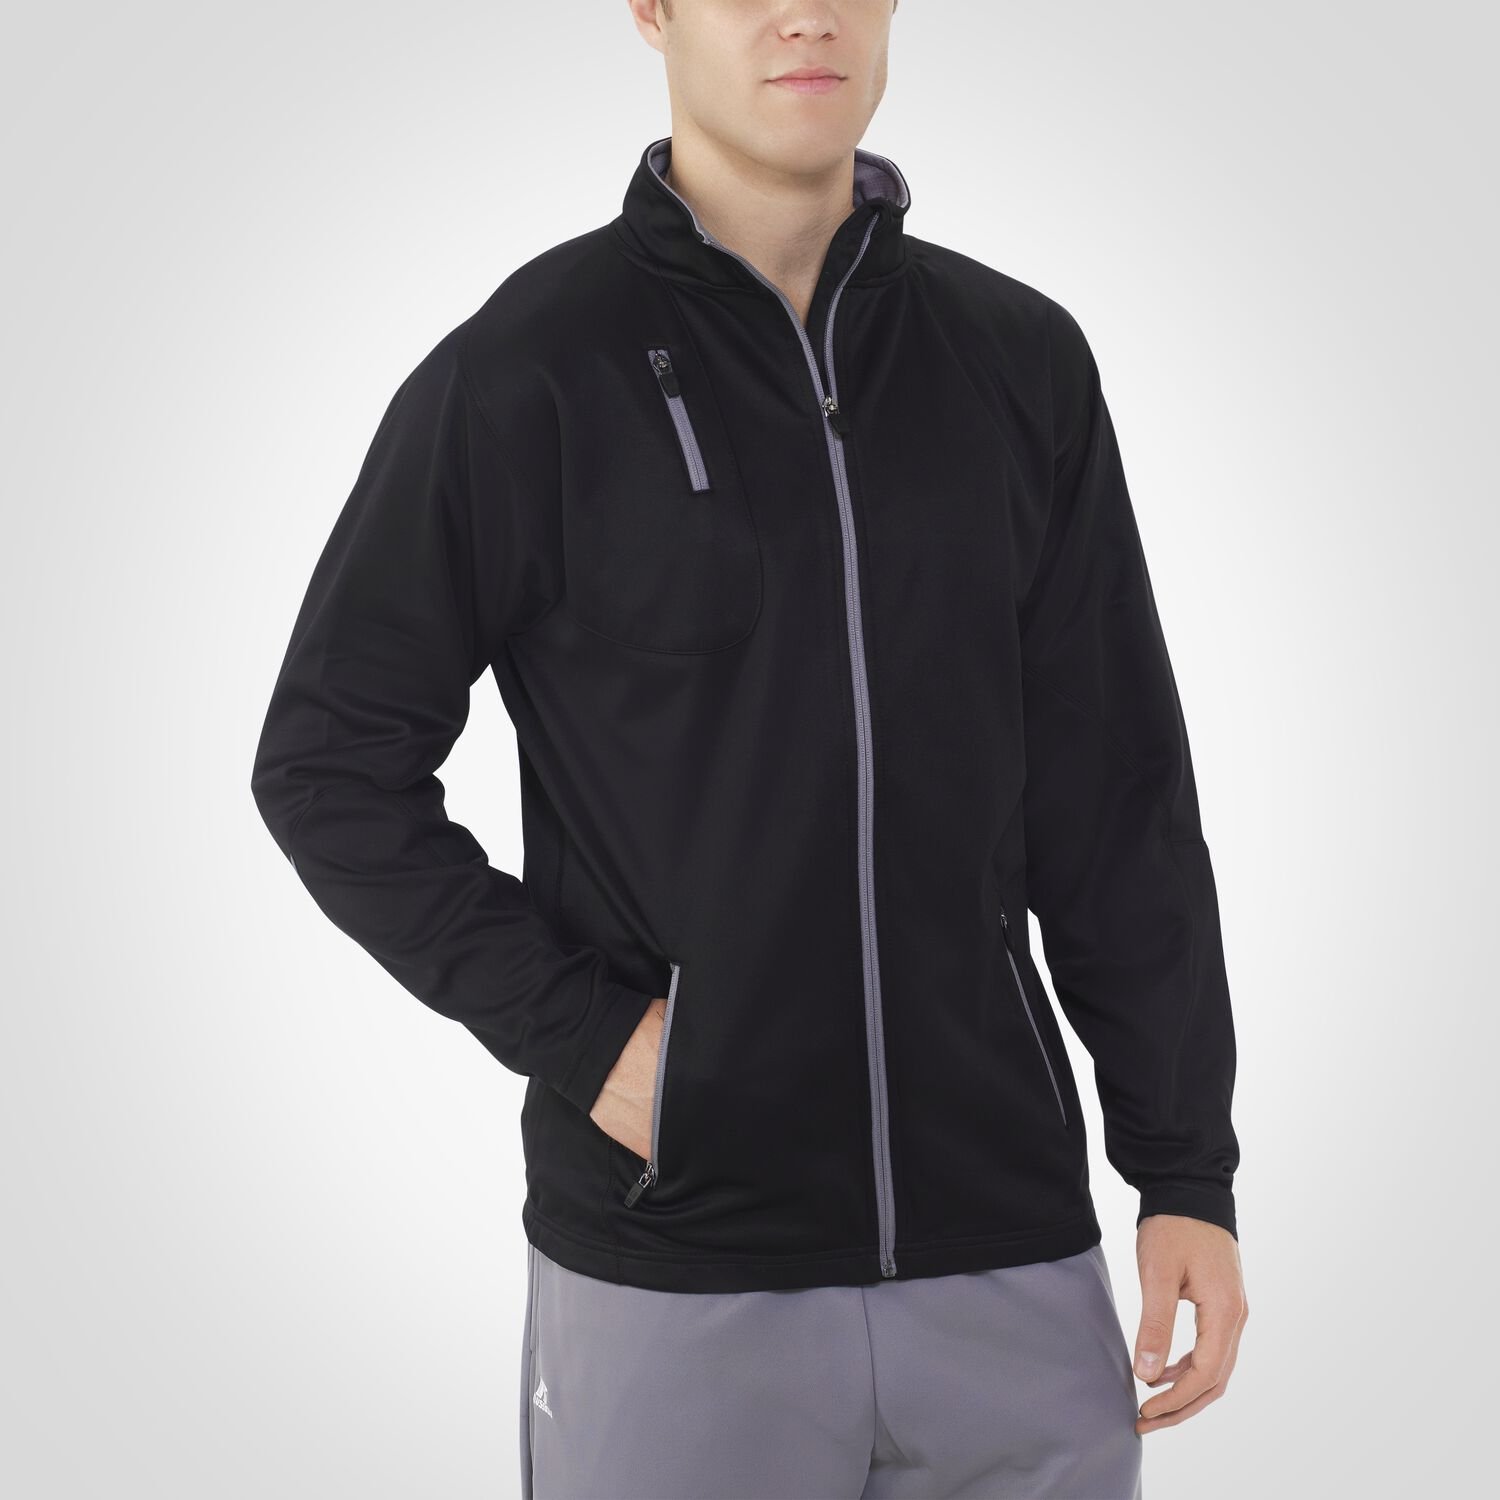 a5d5822a4c44 Men s Dri-Power® Tech Fleece Full-Zip Jacket - Russell US